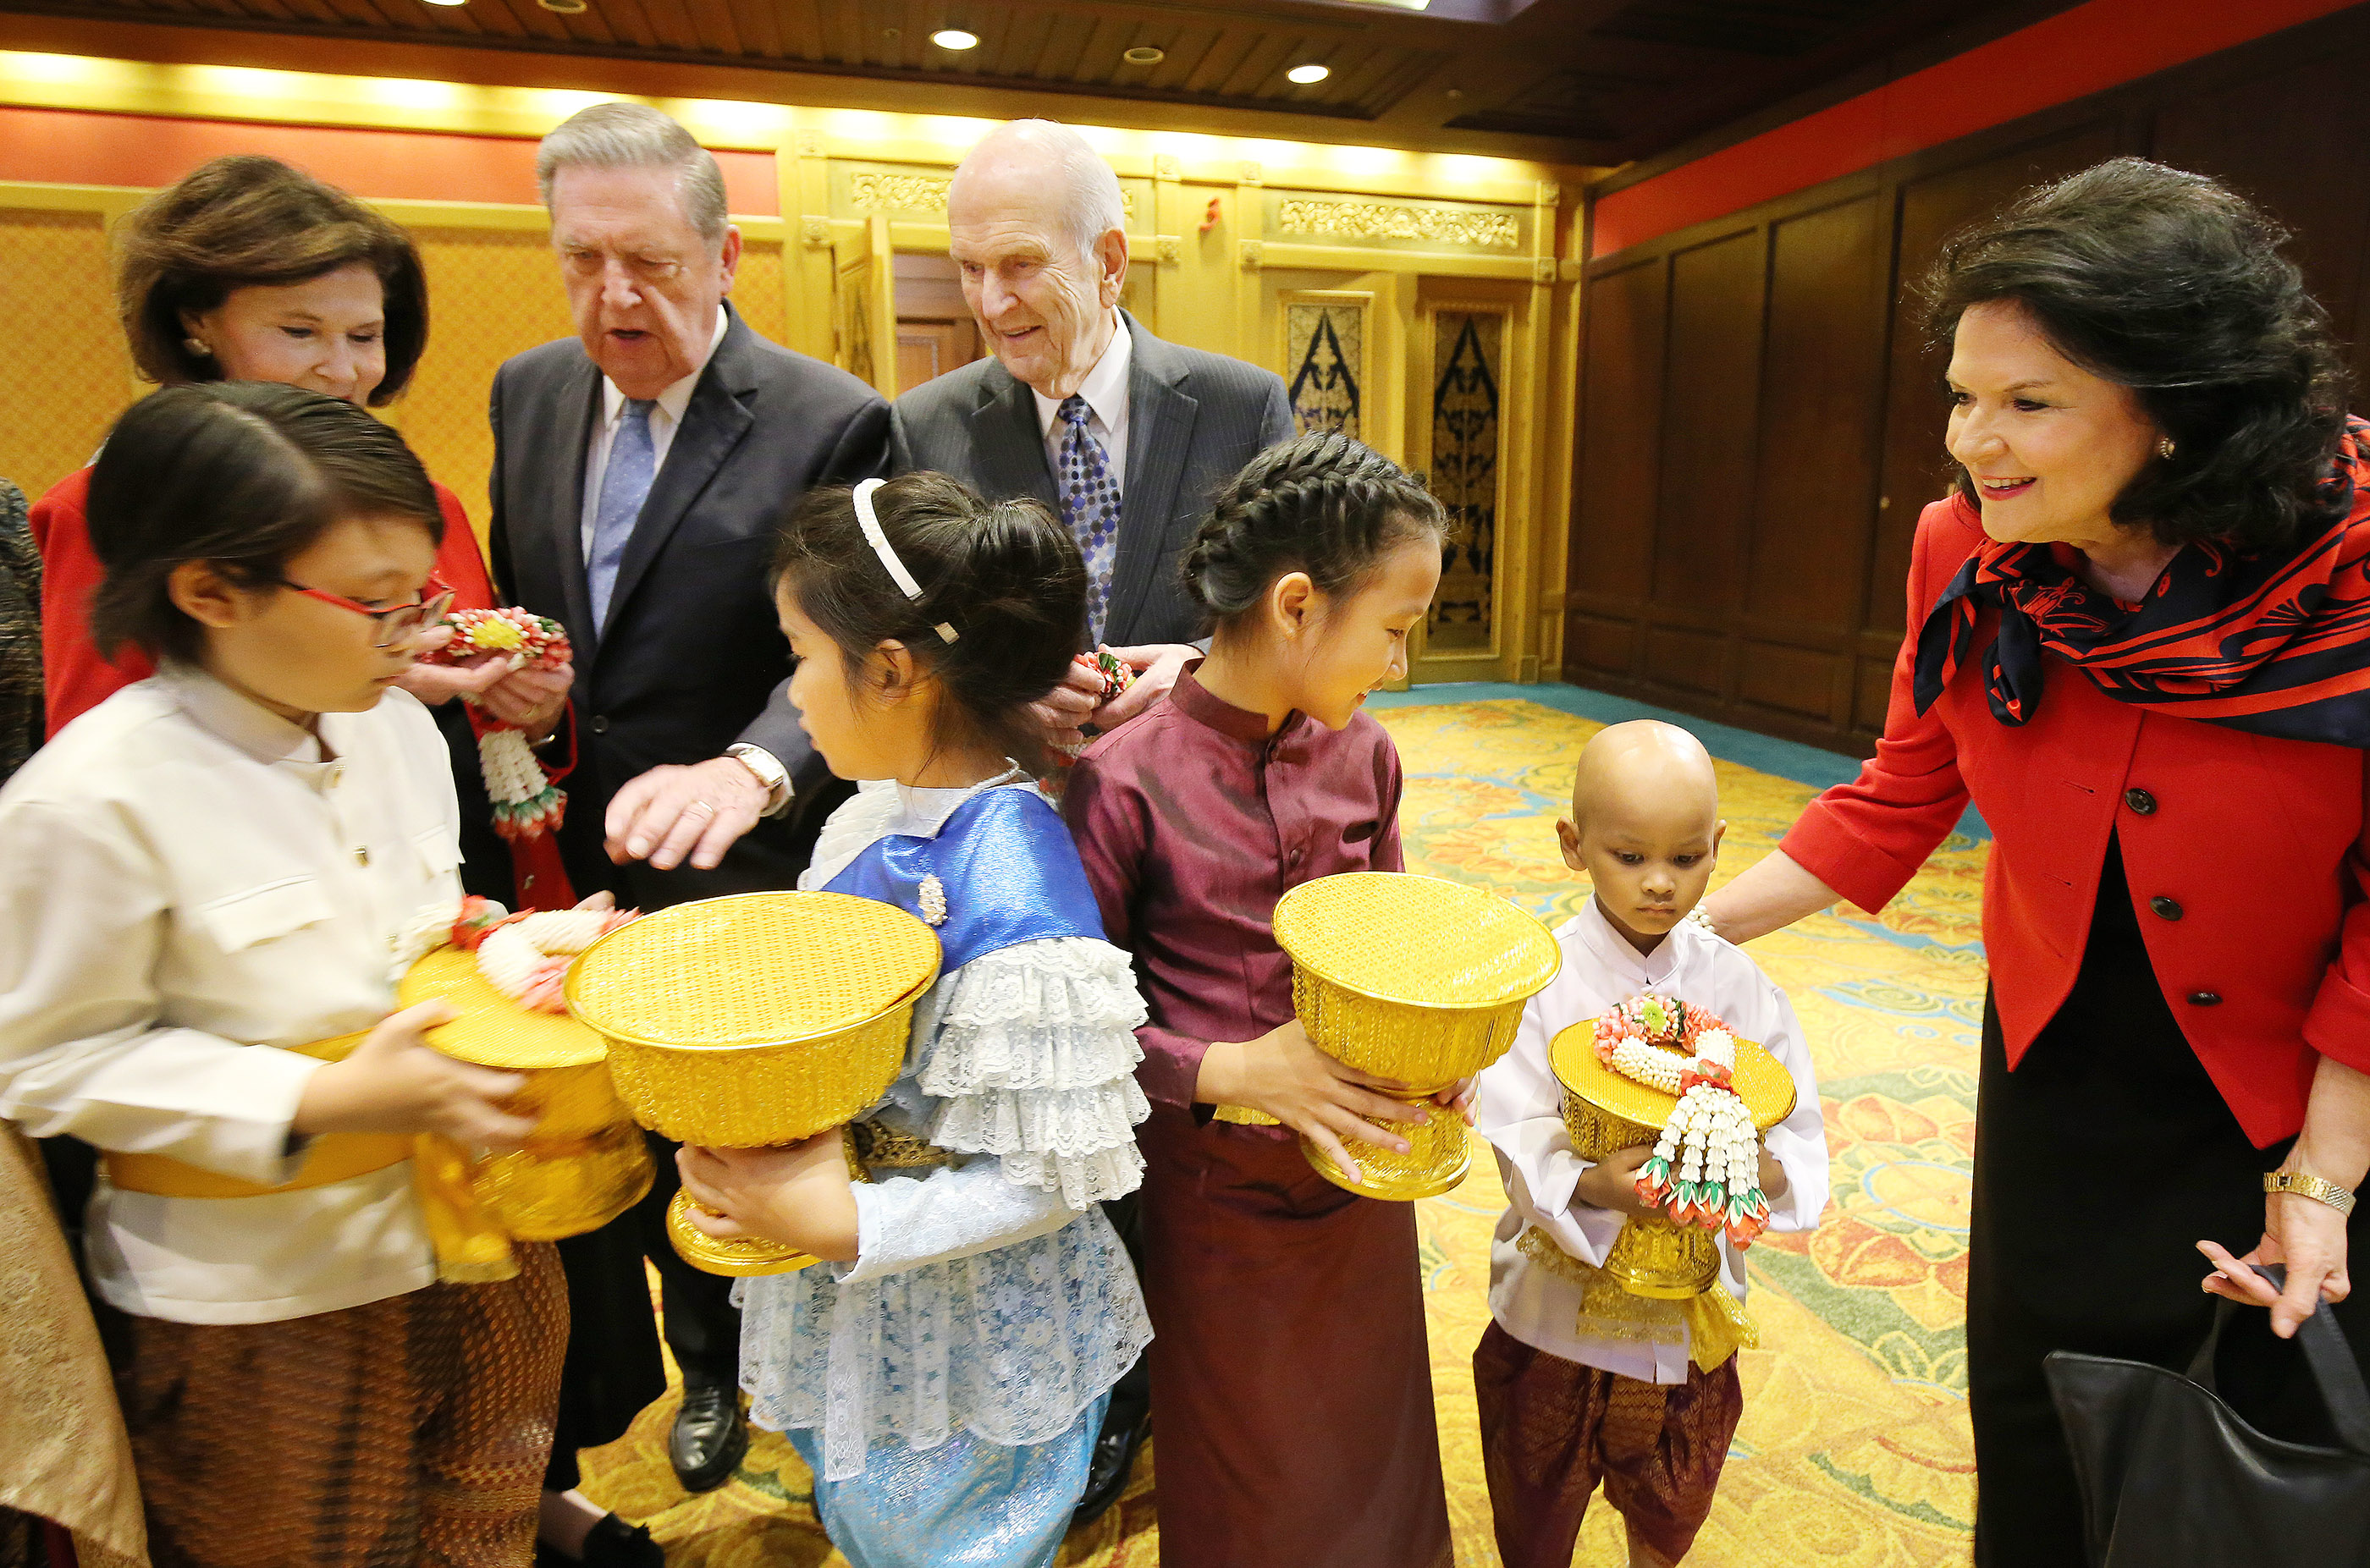 Russell M. Nelson, President of The Church of Jesus Christ of Latter-day Saints, and his wife, Sister Wendy Watson Nelson, and Elder Jeffrey R. Holland, Quorum of the Twelve Apostles, and Sister Patricia Holland are greeted and given flowers by Primary children in Bangkok, Thailand, on Friday, April 20, 2018.